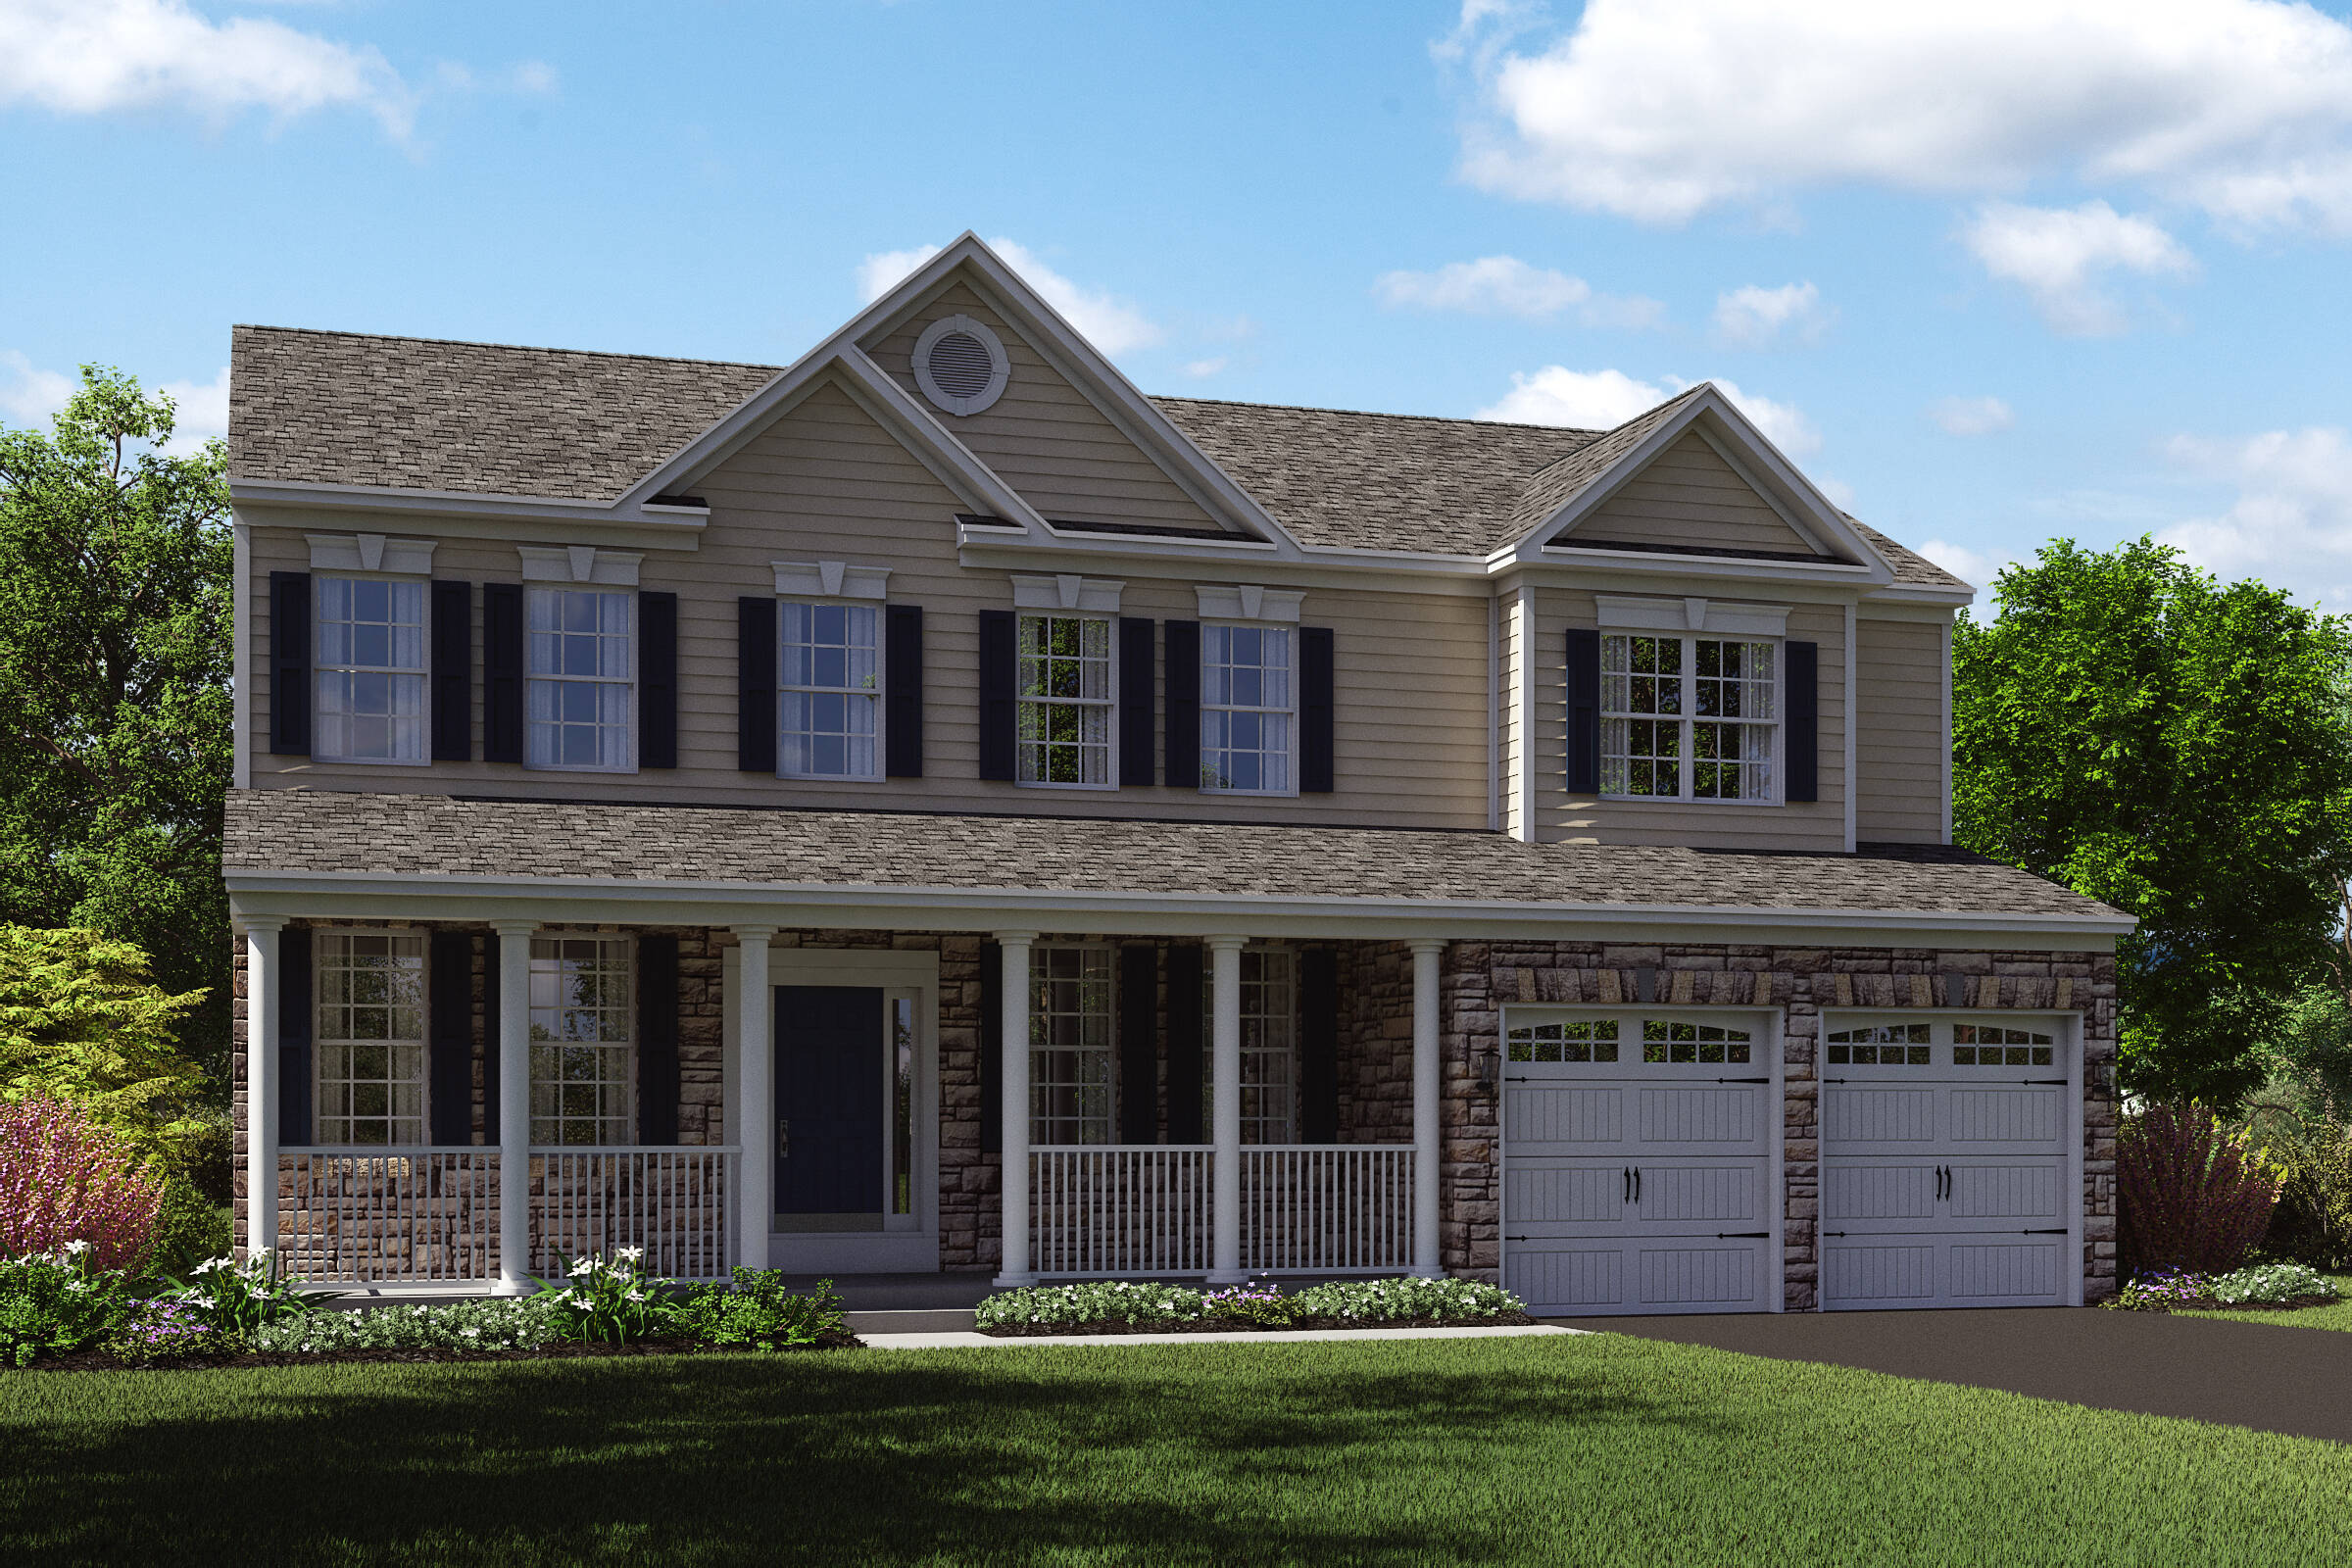 delaware c country stone new homes at ashers farm in maryland